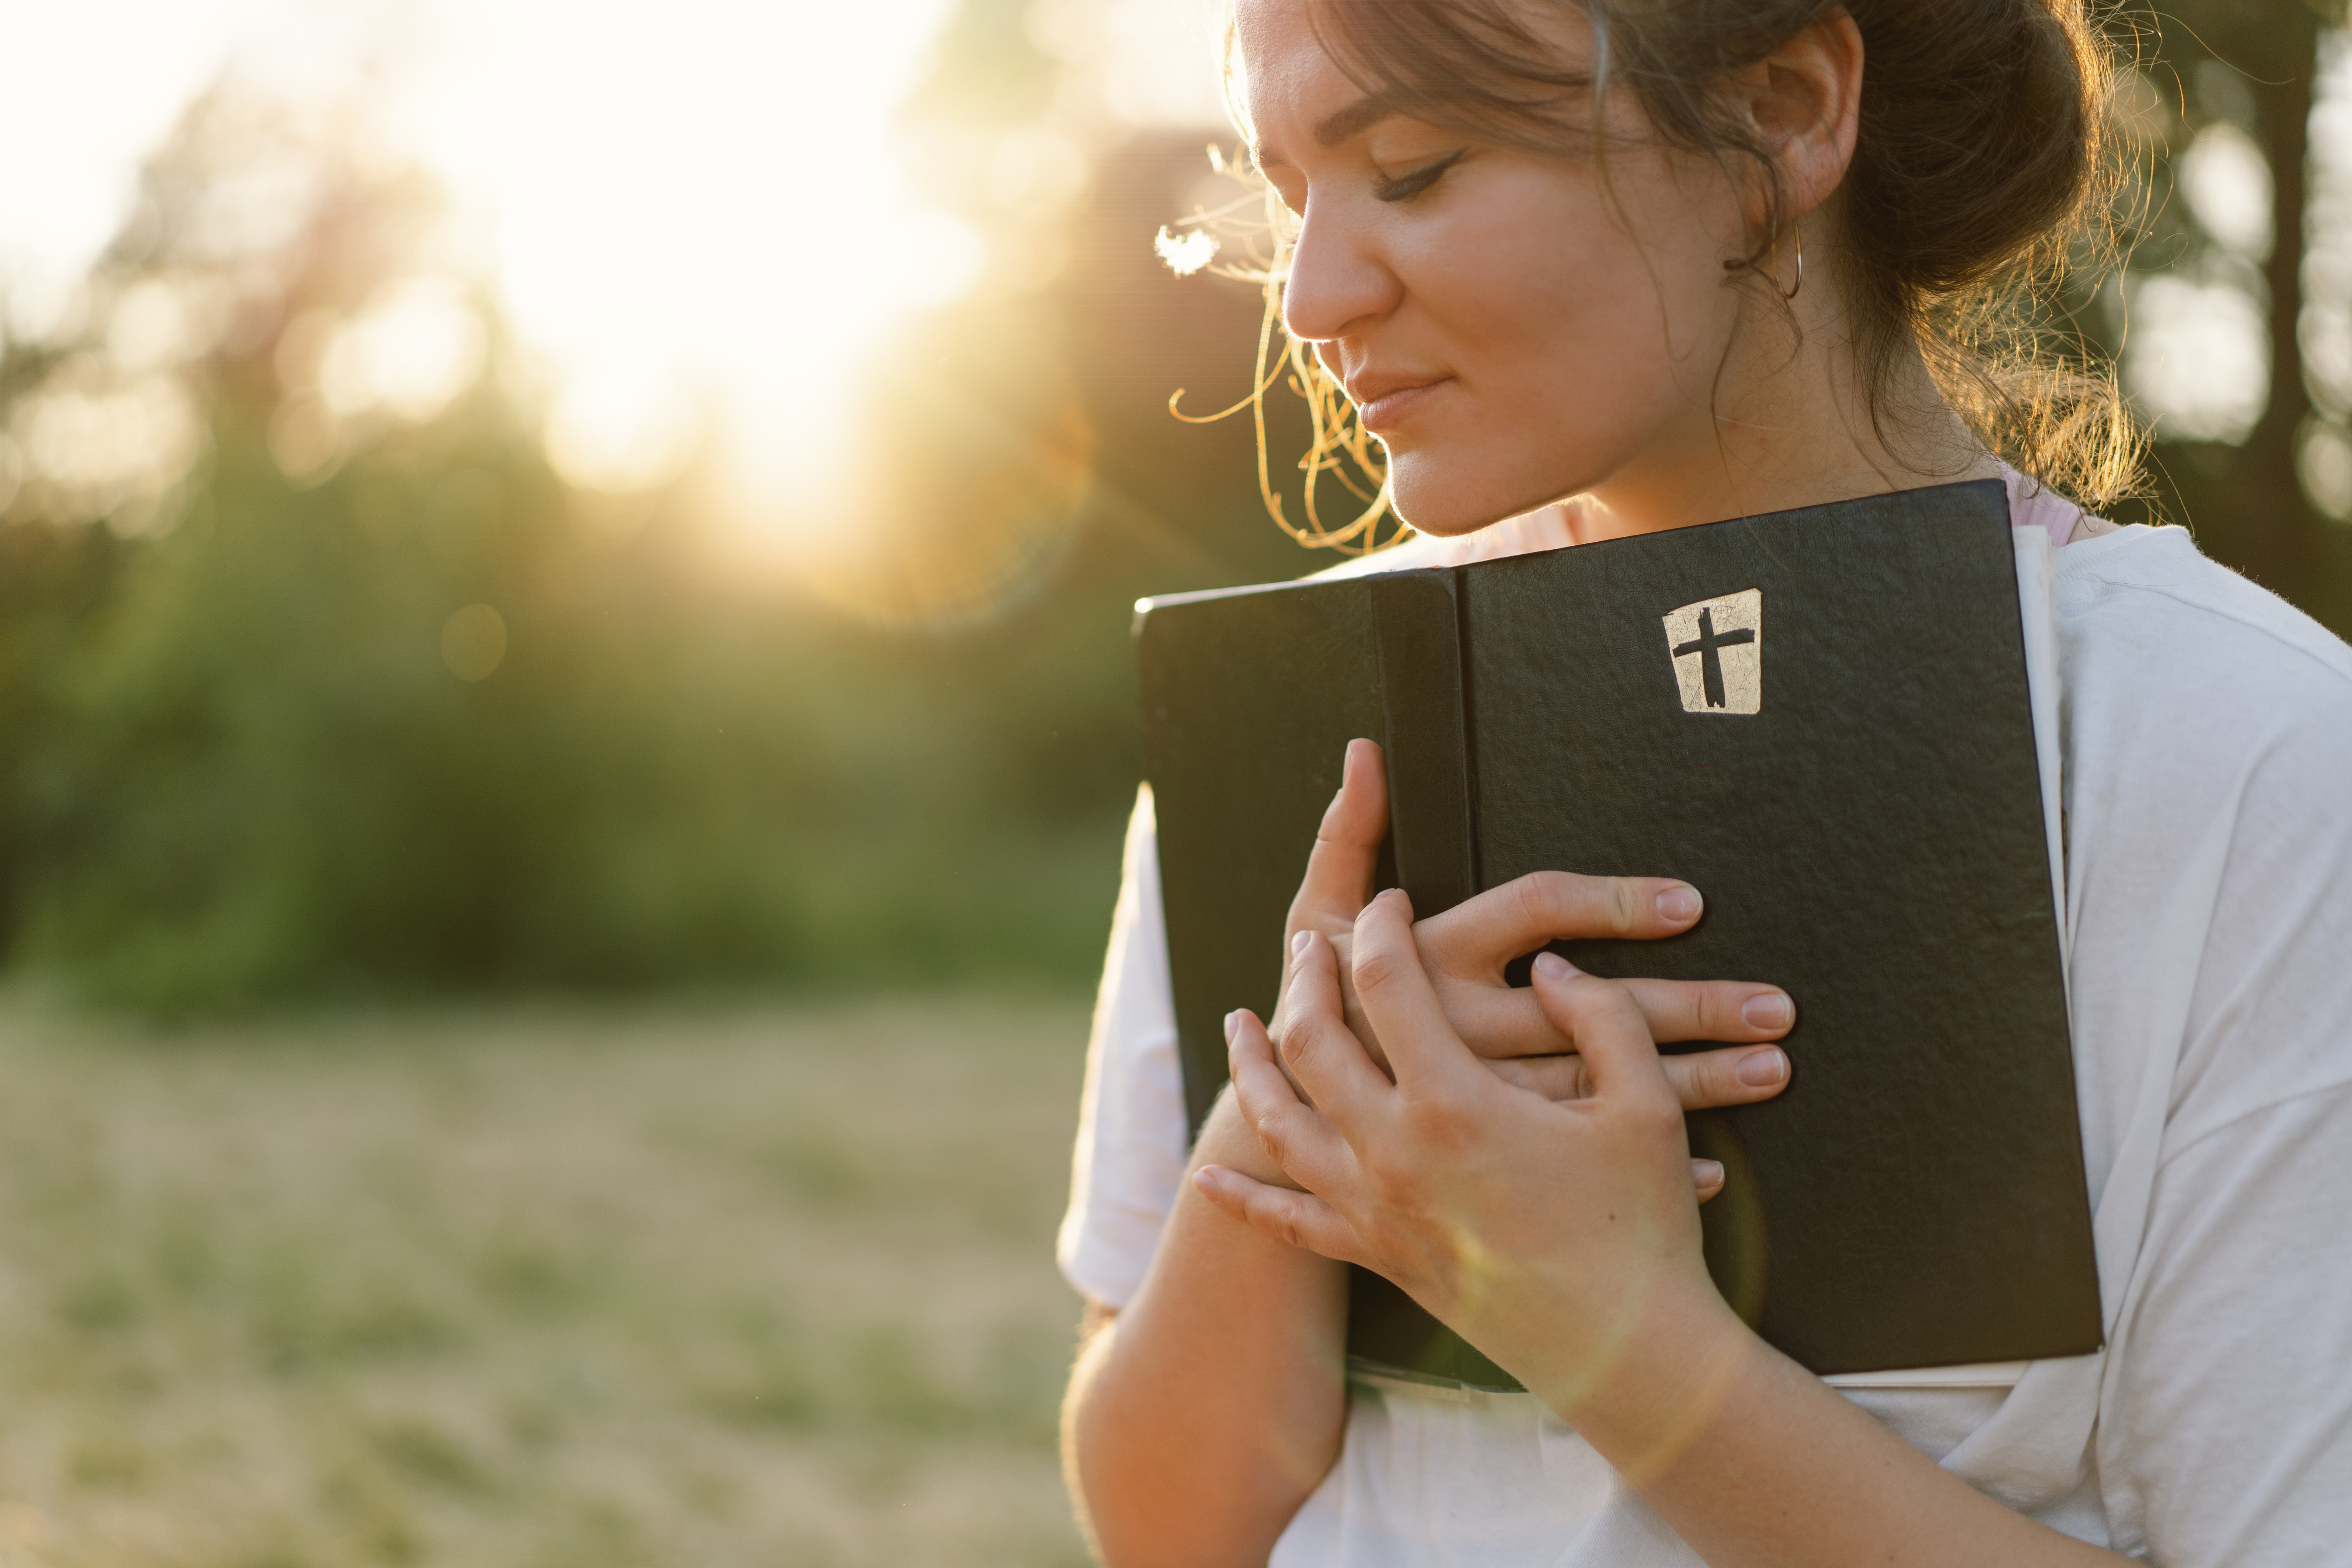 christian-woman-holds-bible-in-her-hands-LHB7X8C image